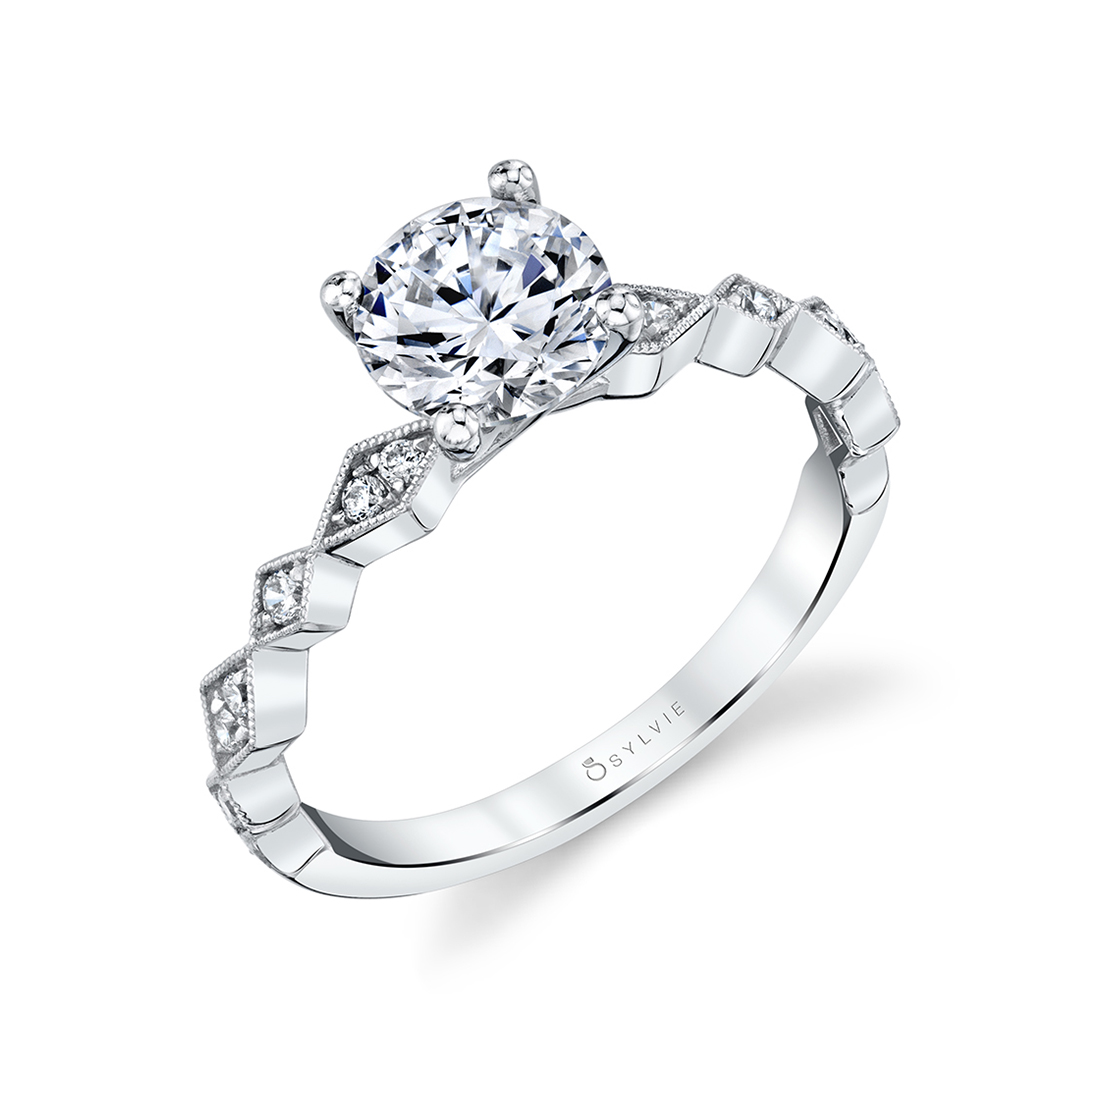 Profile view of a Modern Engagement Ring - Darcy